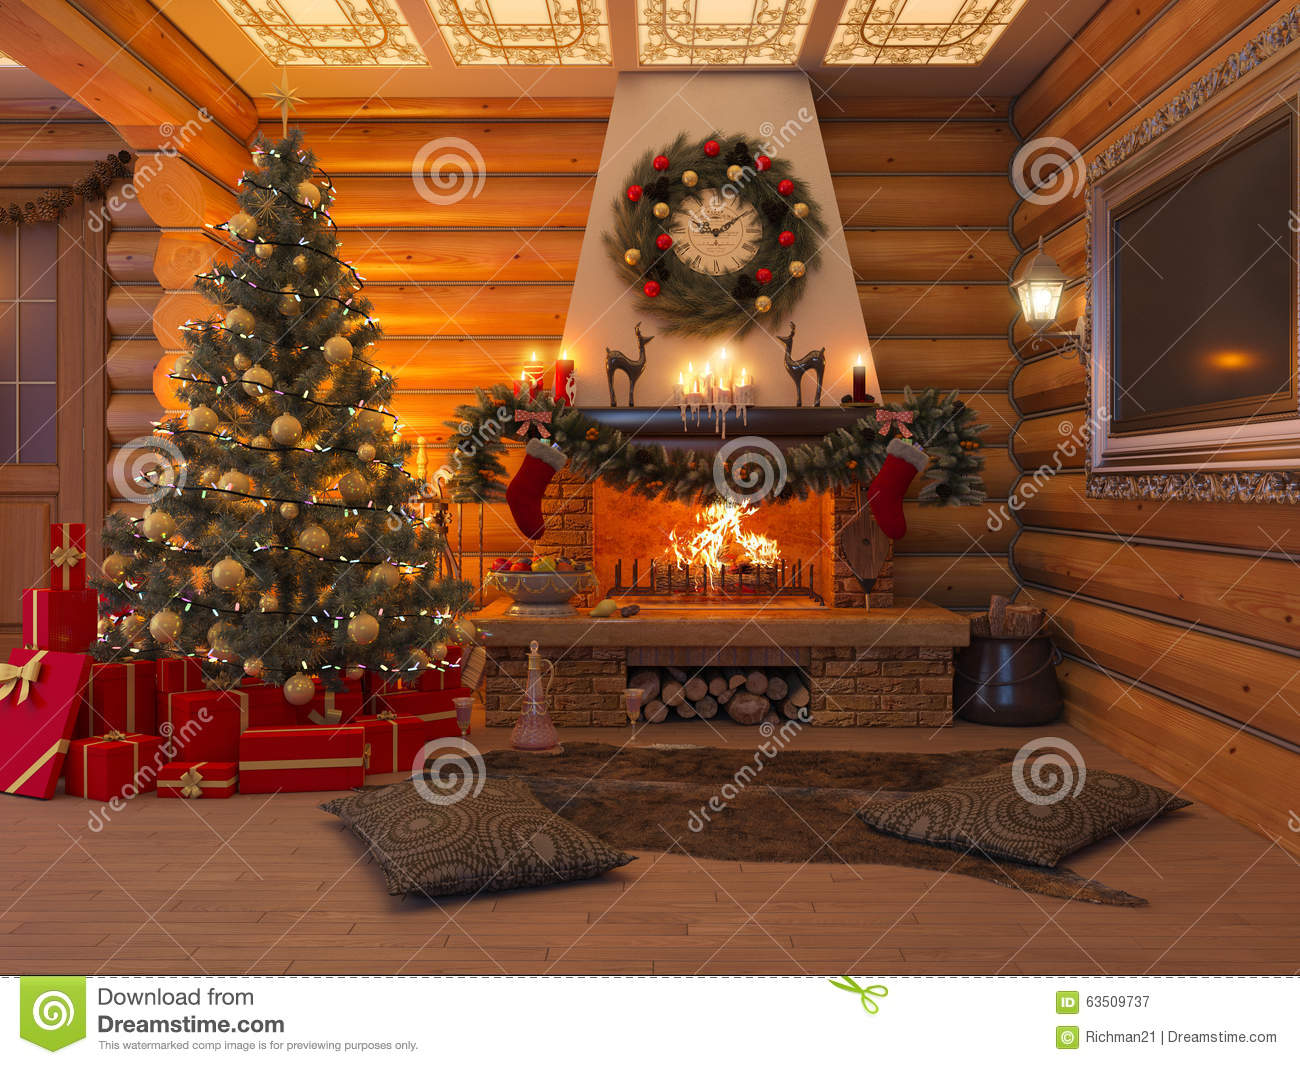 3d illustration new year interior with christmas tree presents